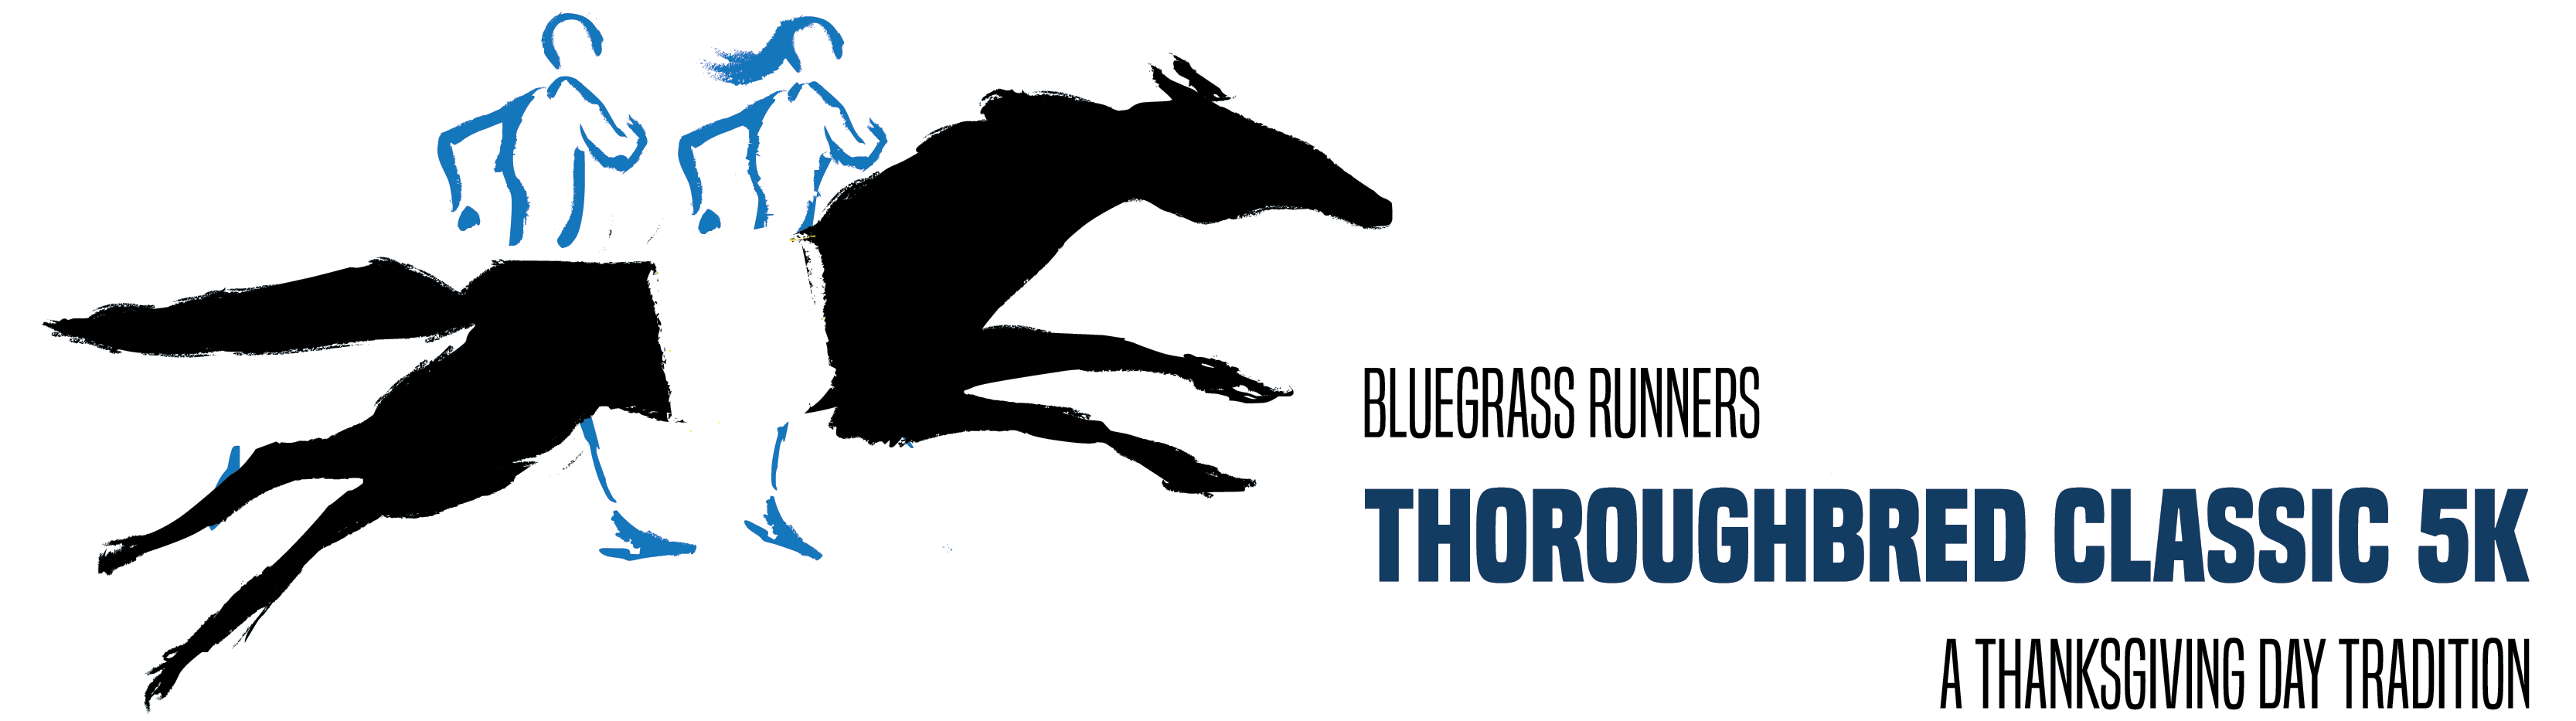 Bluegrass Runners Thoroughbred Classic 5K – Thanksgiving Day – November 25, 2021 – Keeneland